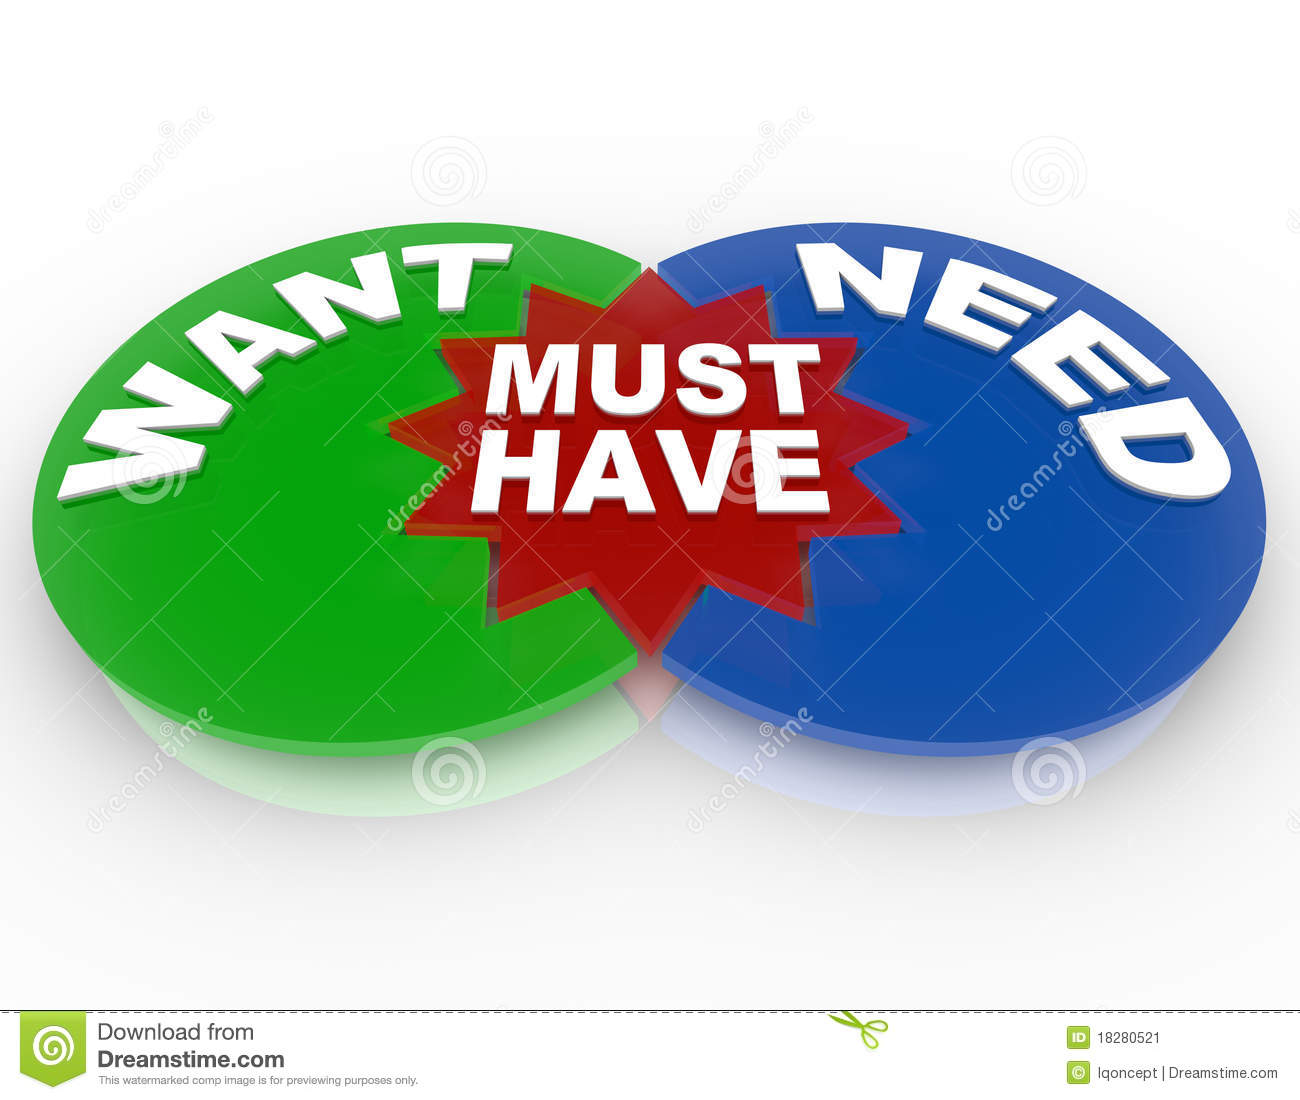 needs and wants venn diagram autocad wiring tutorial want need must have stock illustration a with circles marked intersecting